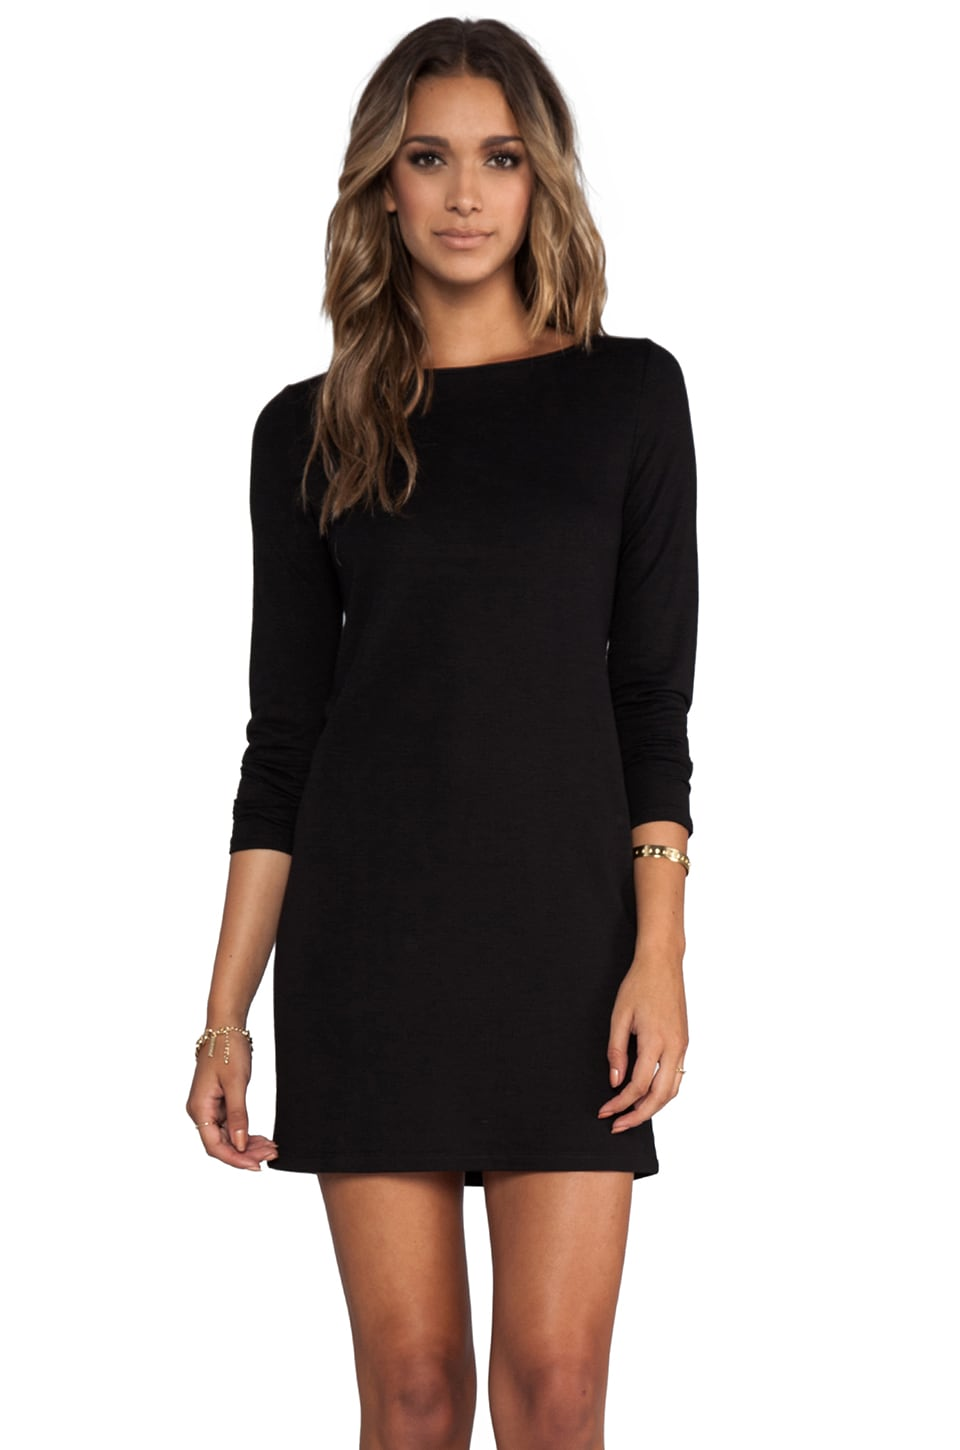 Lanston V Back Sheath Dress in Black